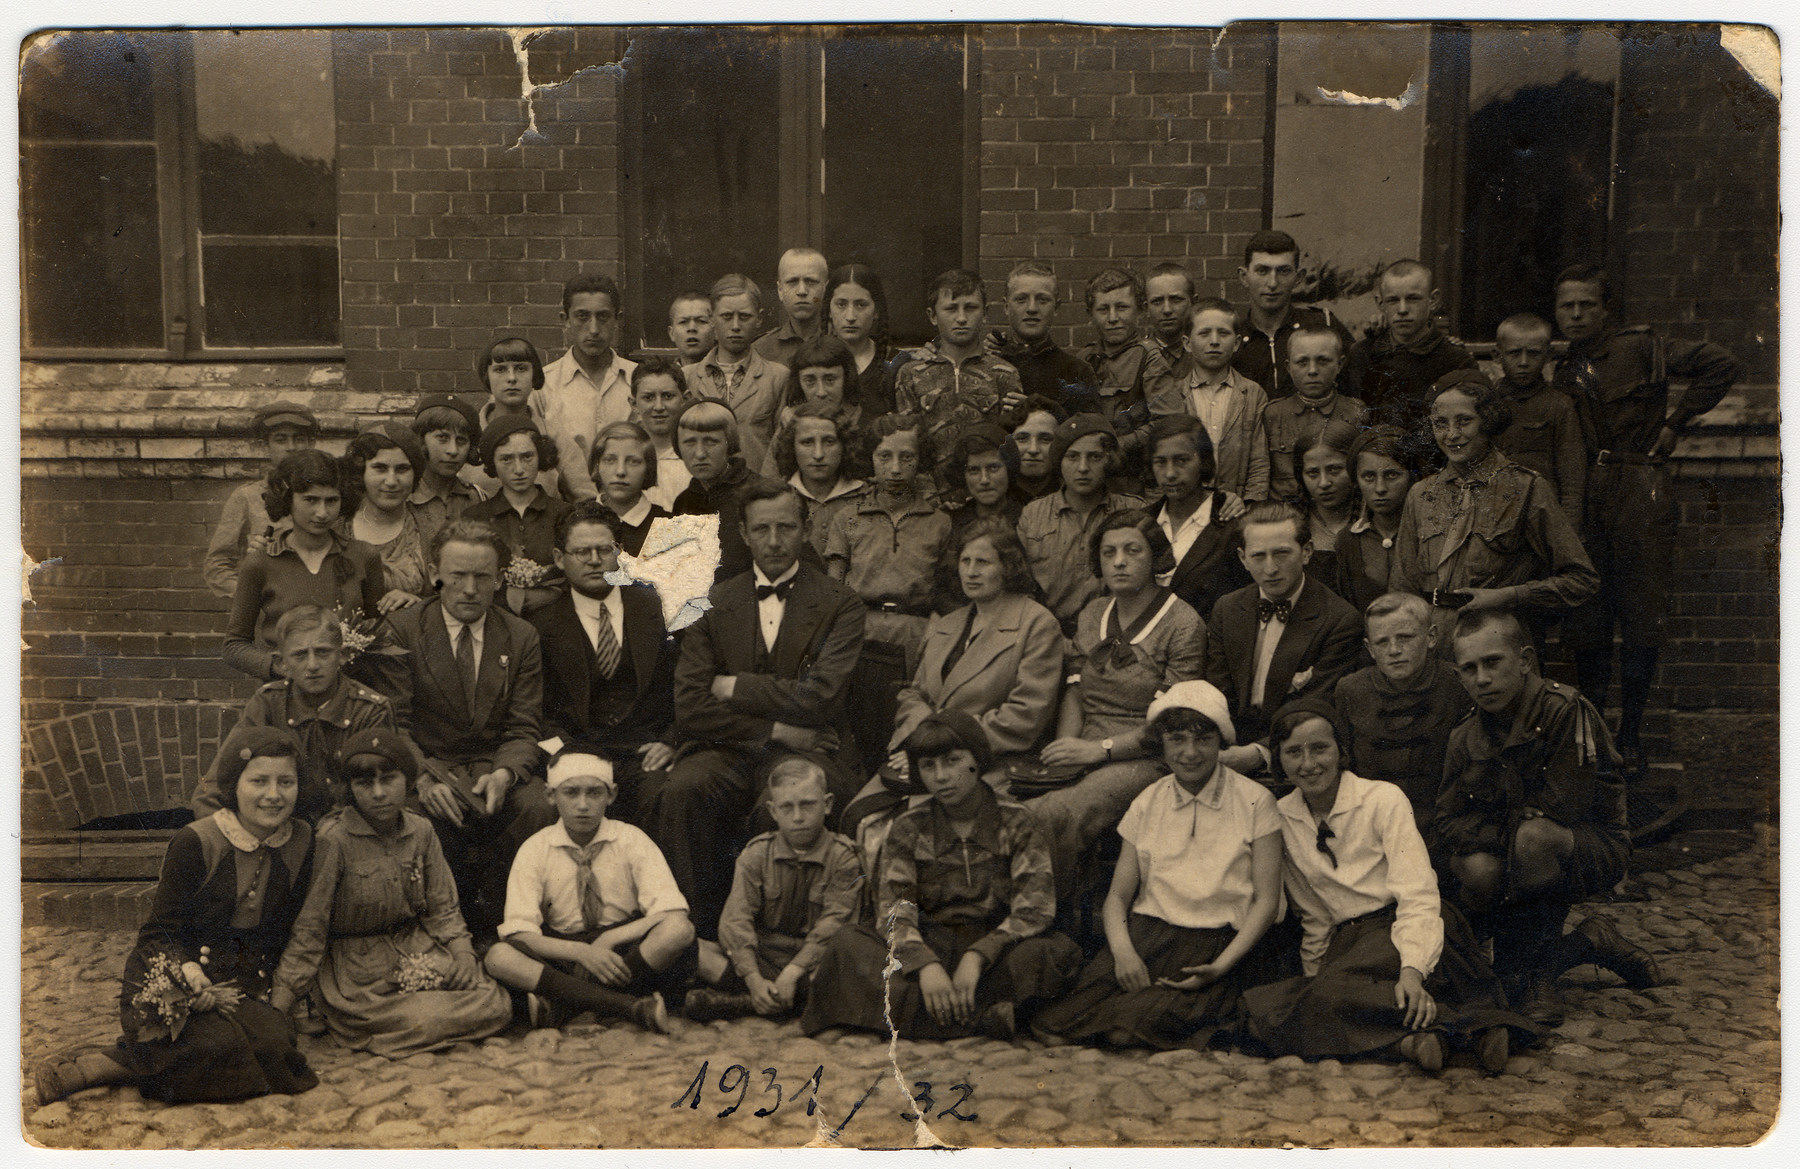 Group portrait of children and teachers in a Jewish school in Poland [possibly the Jewish Gymnasium in Mlawa].  Issachar Fater is seated in the second row, third from the left.